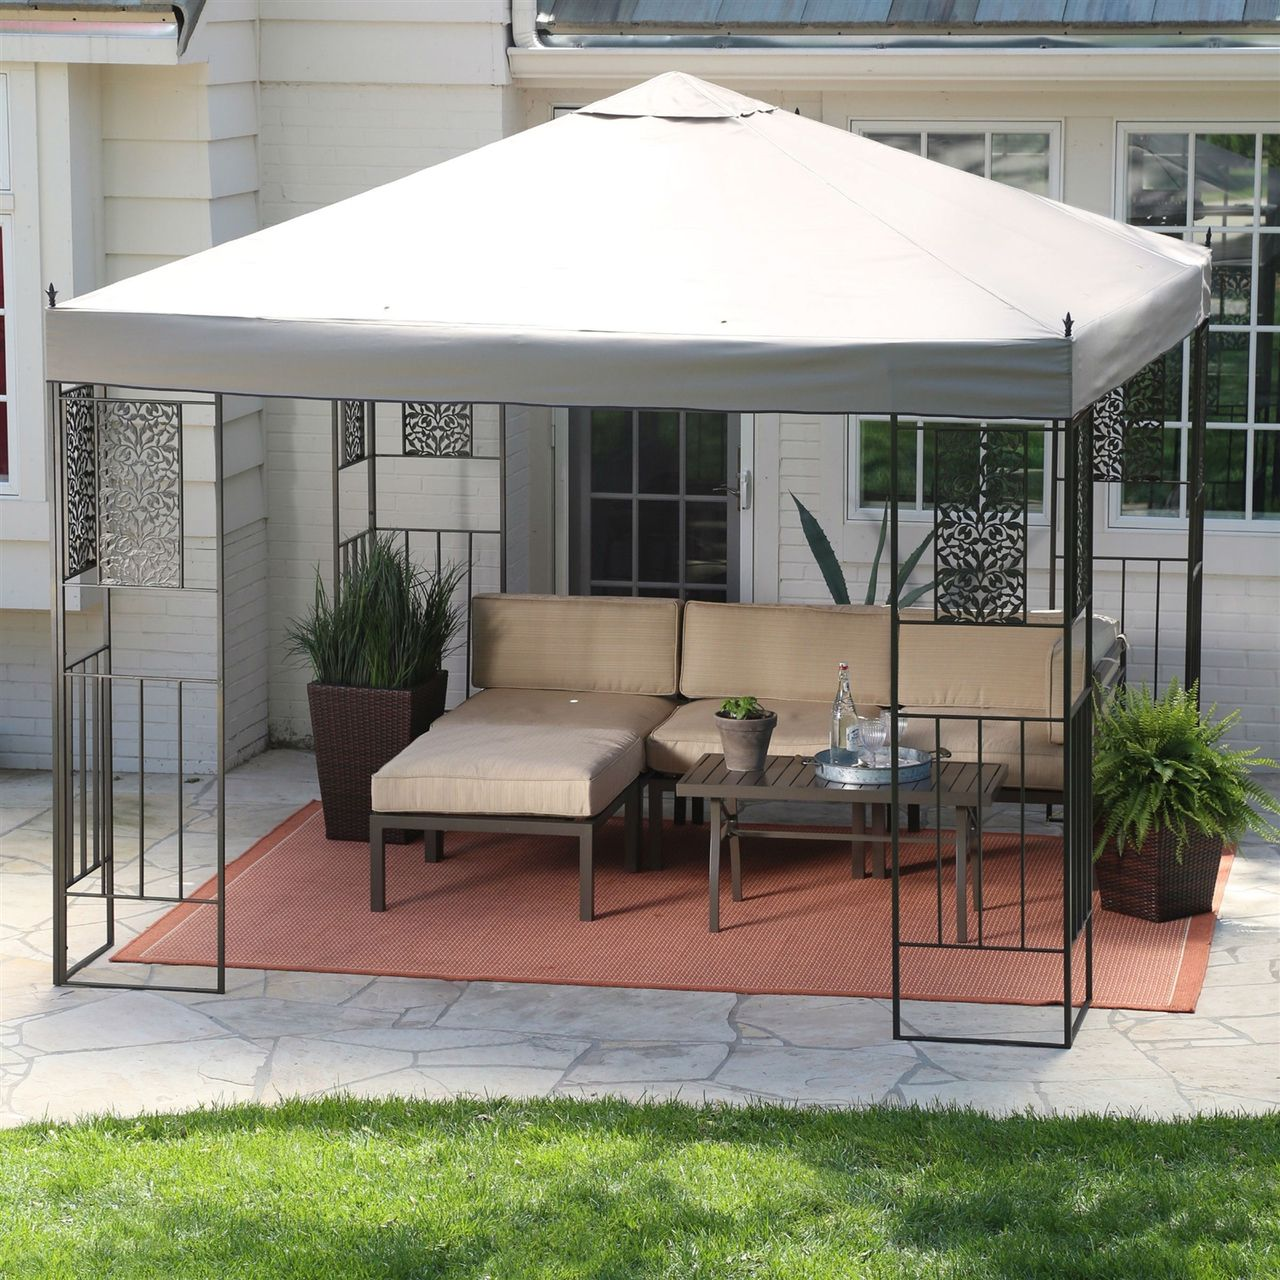 10 Ft X 10 Ft Backyard Patio Garden Gazebo With Steel Frame And Vented Canopy Outdoor Pergola Backyard Gazebo Backyard Patio